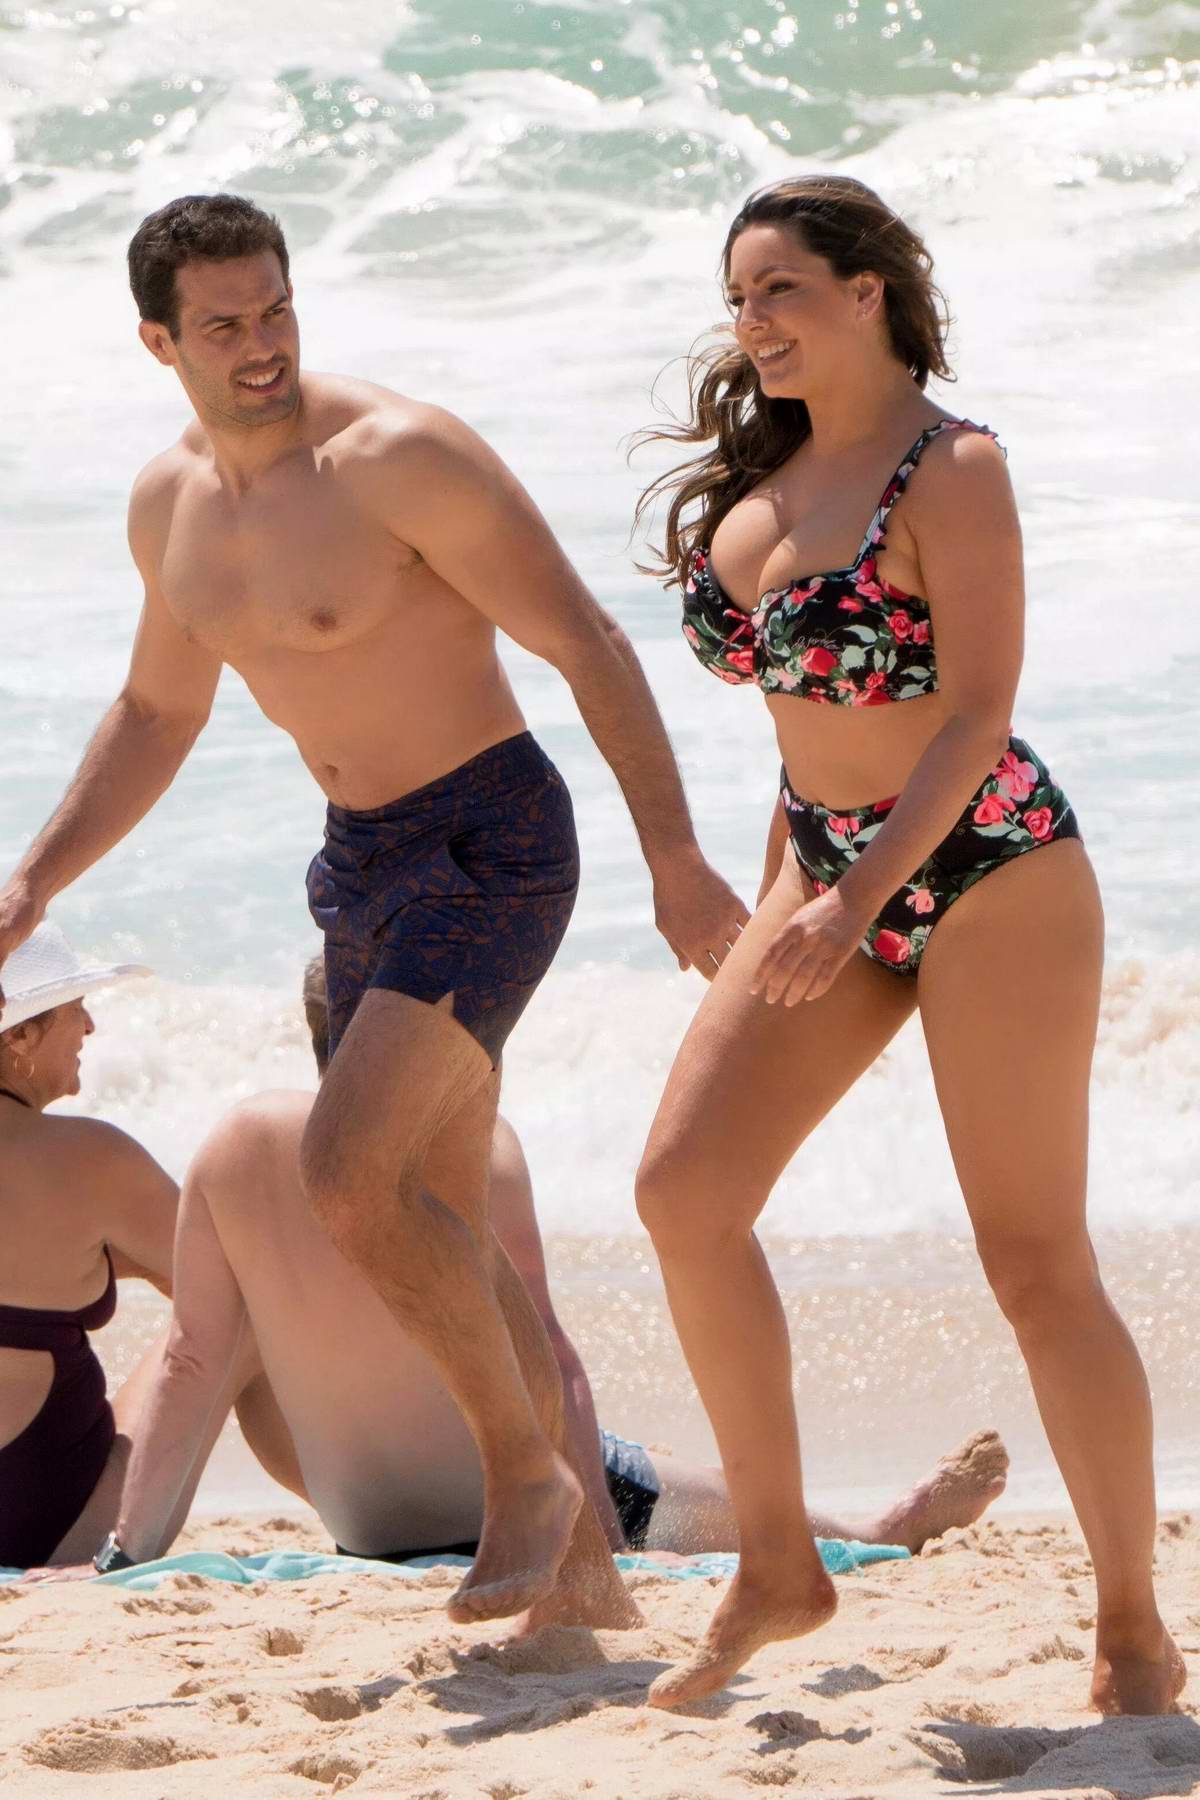 Kelly Brook rocks a floral print bikini as she enjoys a day at the beach with Jeremy Parisi while on holiday in Portugal